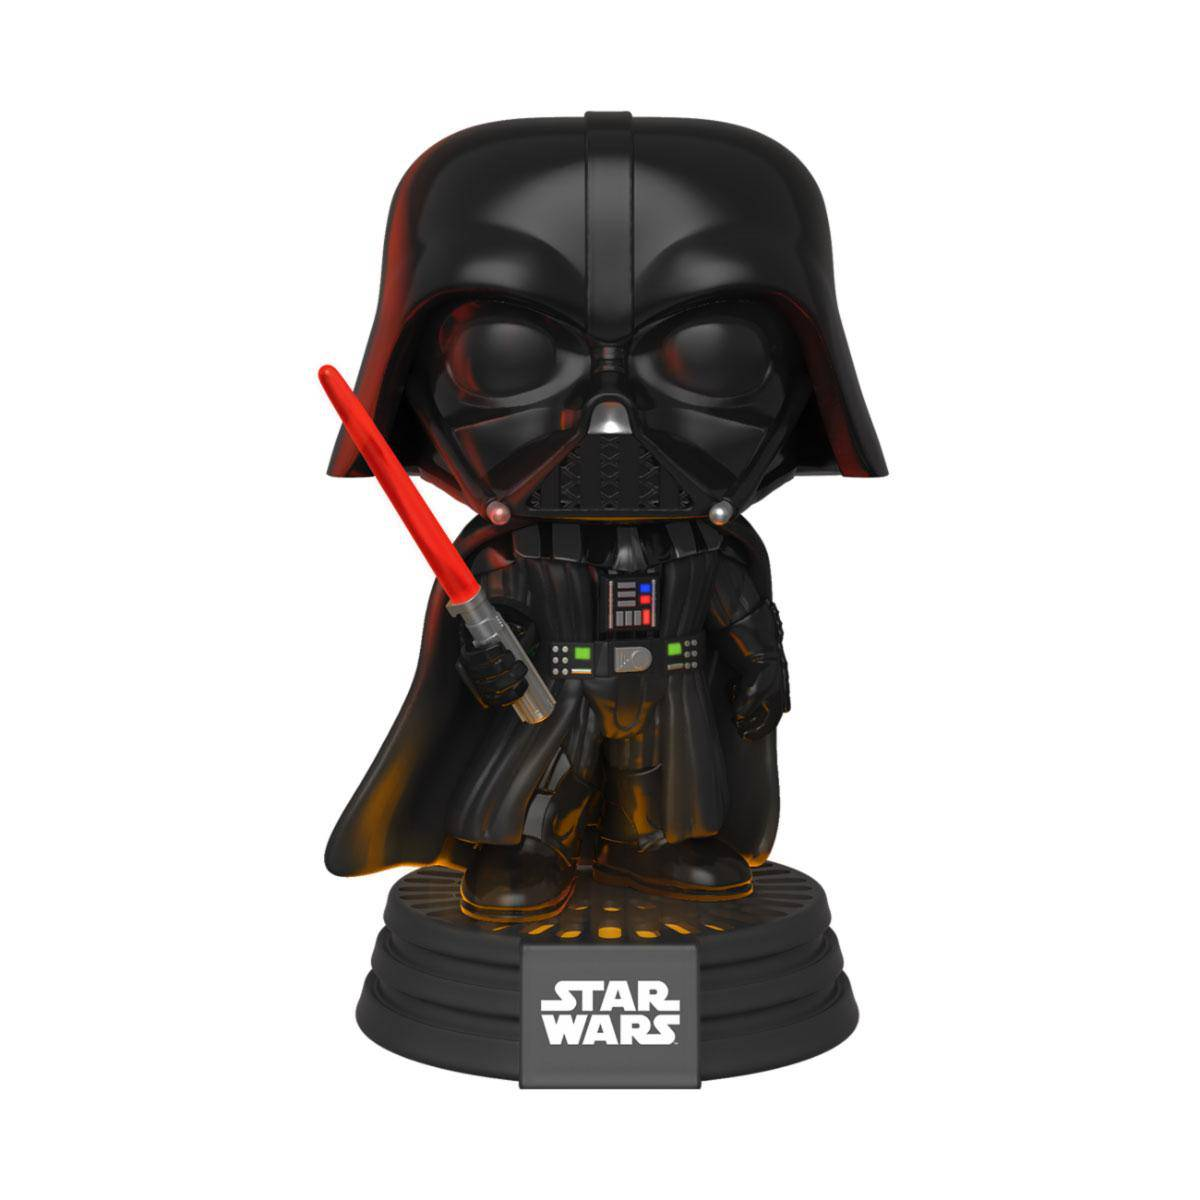 Star Wars sonore et lumineuse: Darth Vader